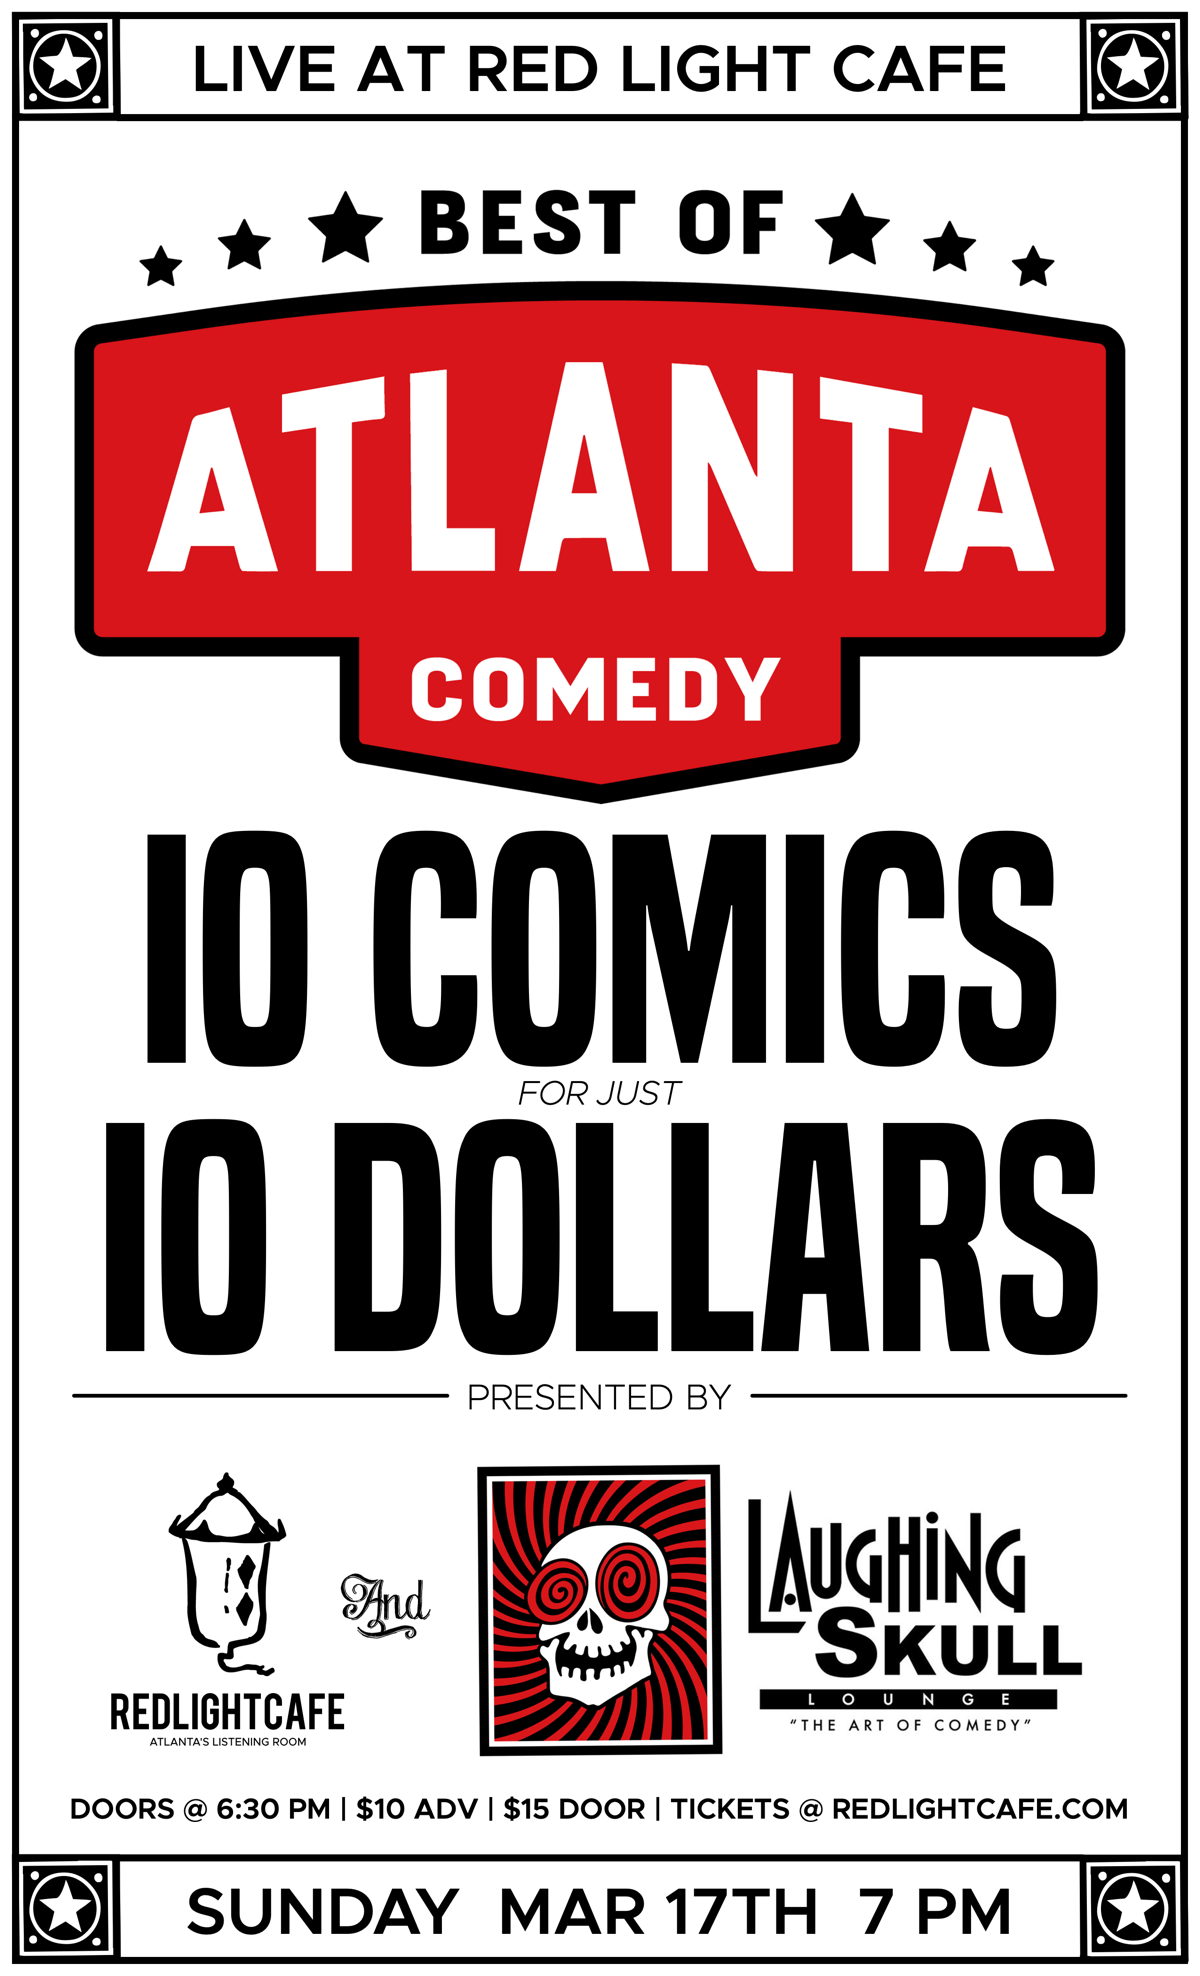 Best of Atlanta Comedy at Red Light Café presented by Laughing Skull Lounge — March 17, 2019 — Red Light Café, Atlanta, GA